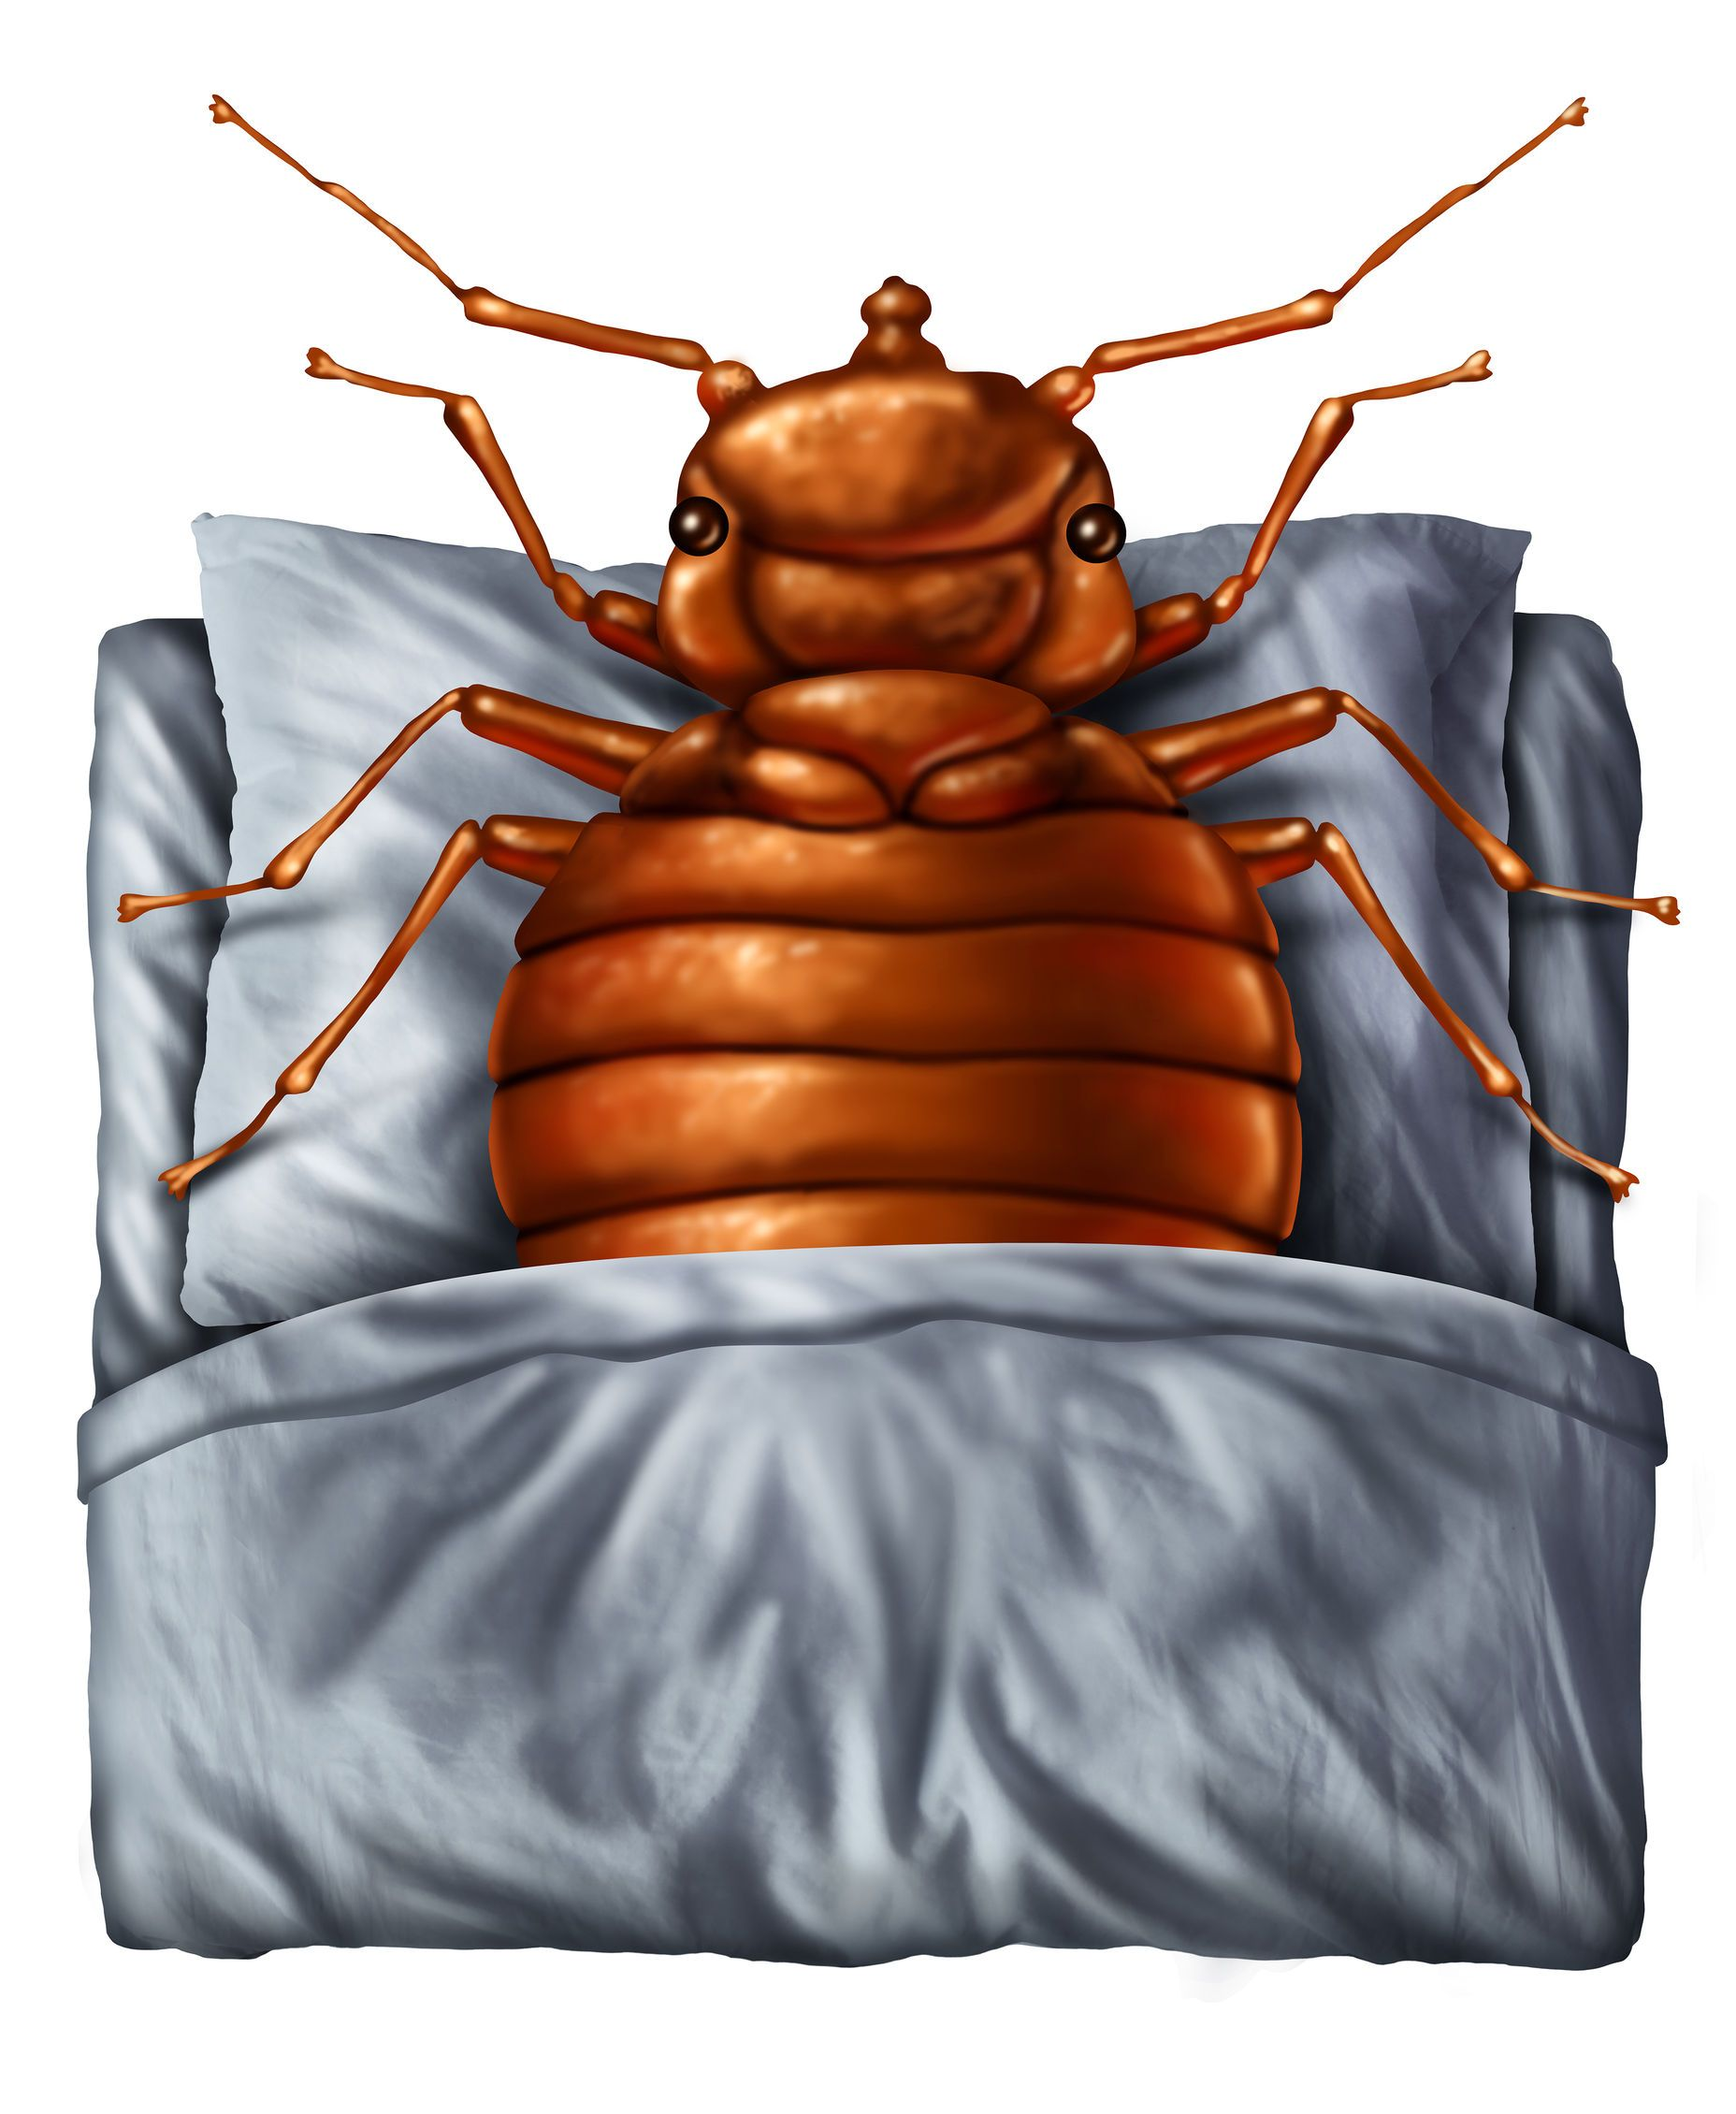 Can Bed Bugs Fly? Bed Bug Facts and Myths While bed bugs